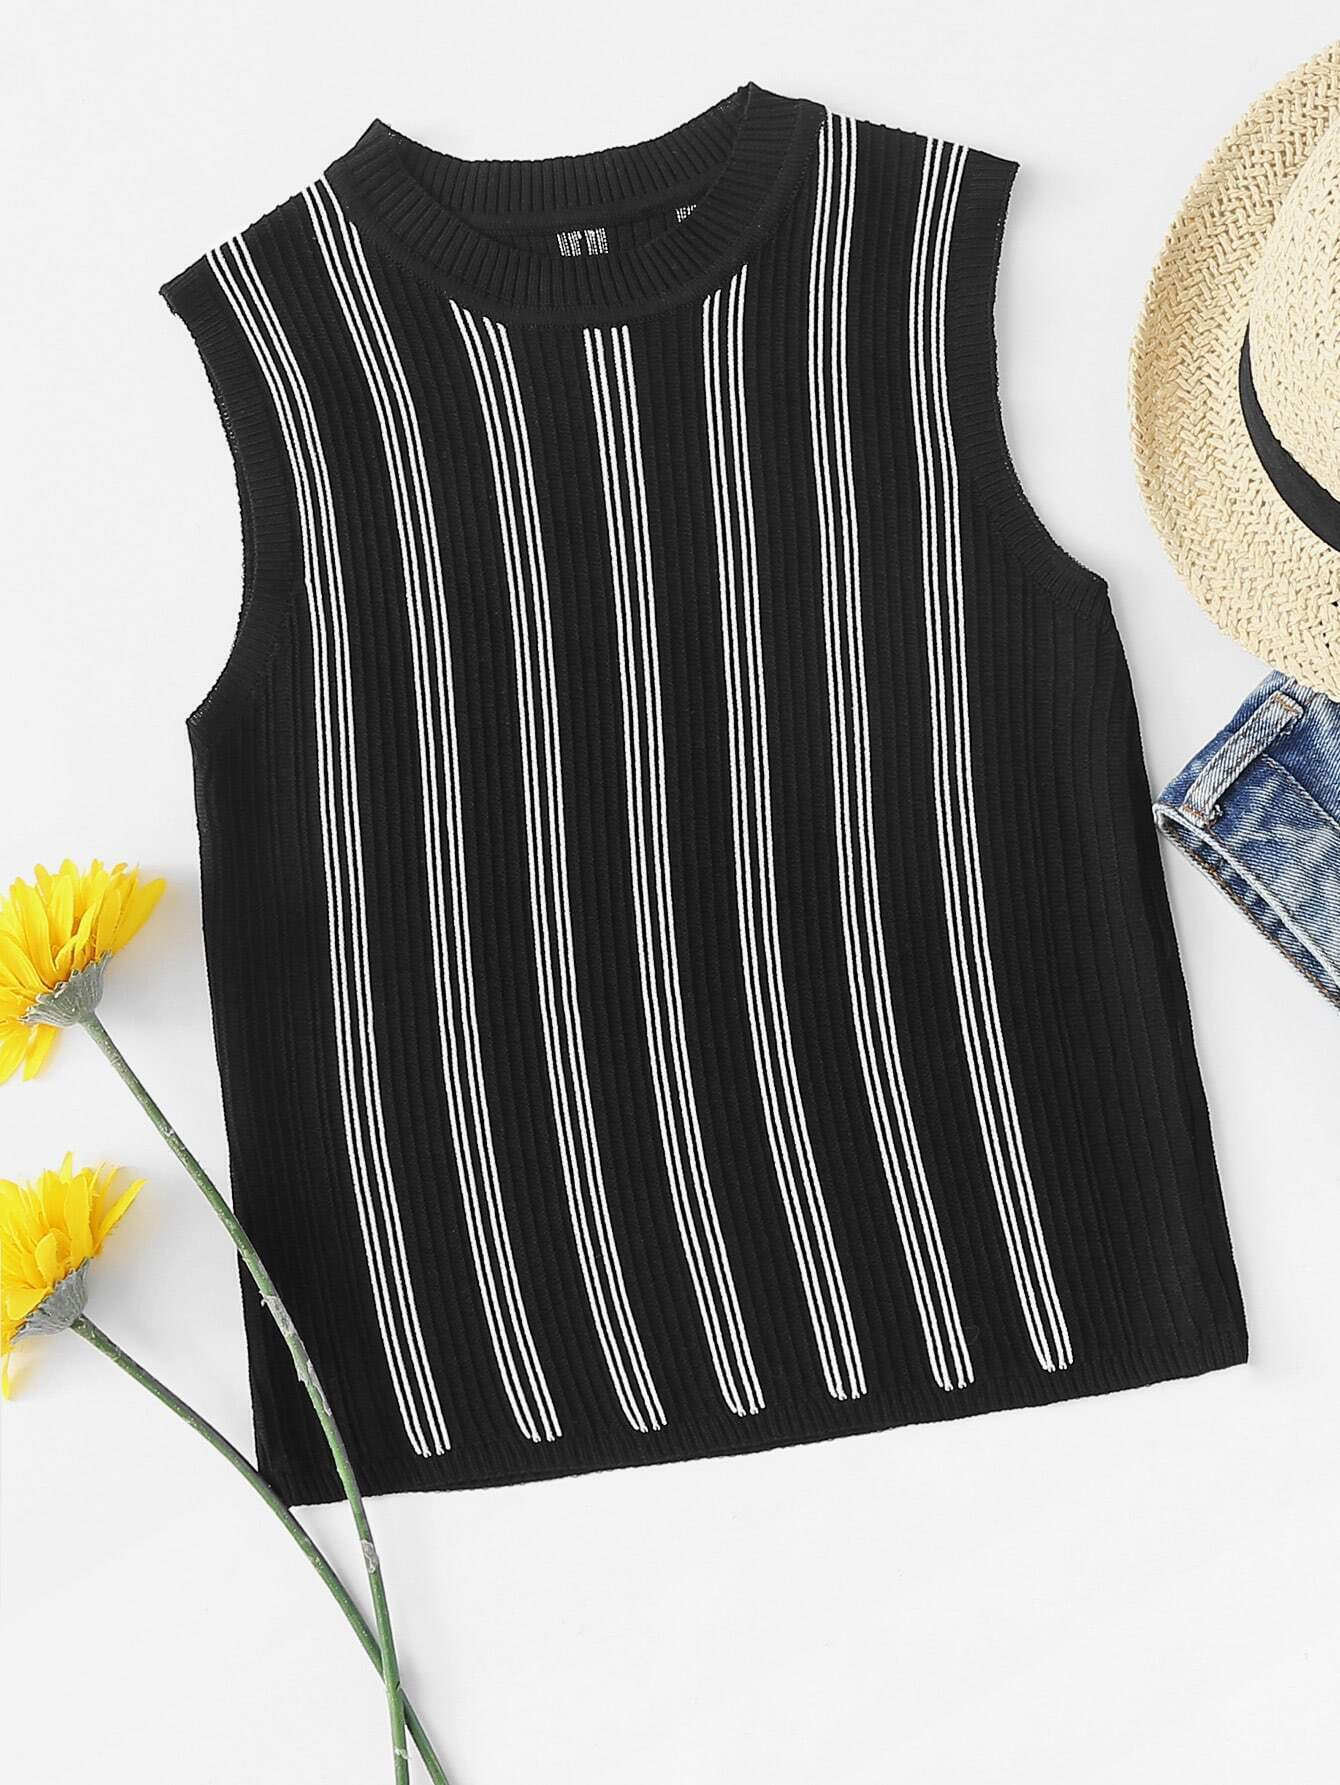 Ribbed Neck Striped Knit Top rves180327061